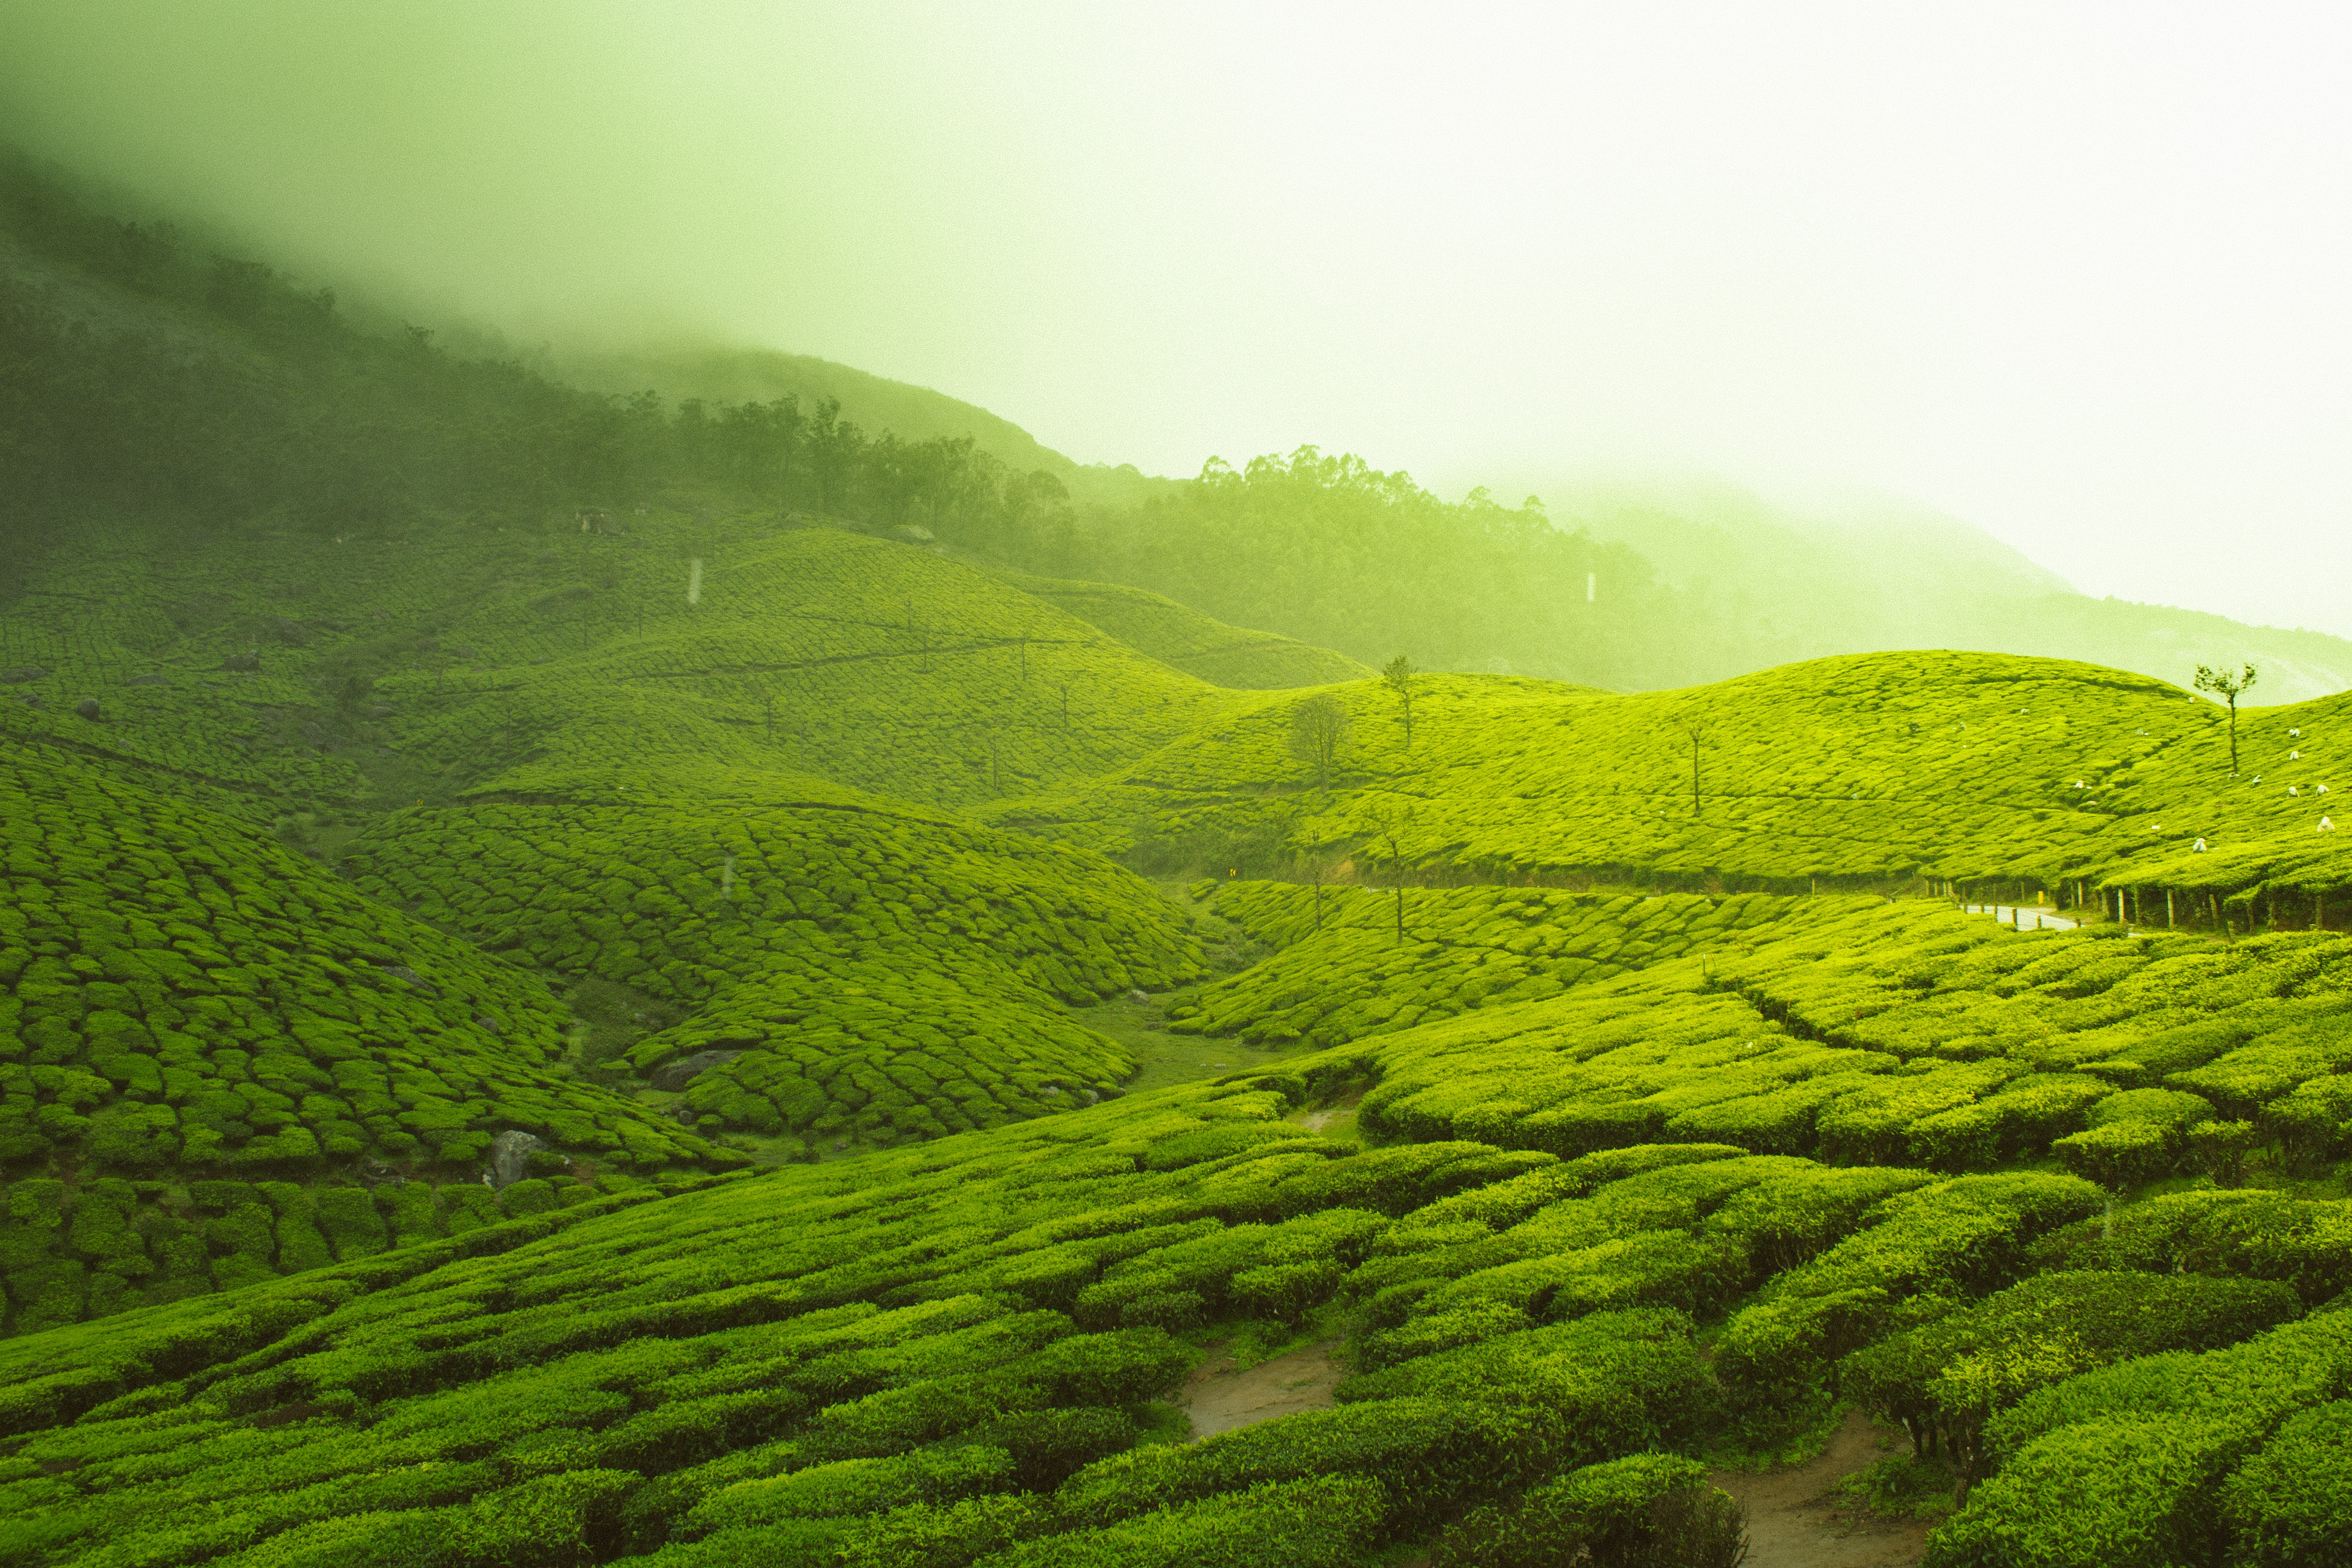 Lush green fields covered in mist